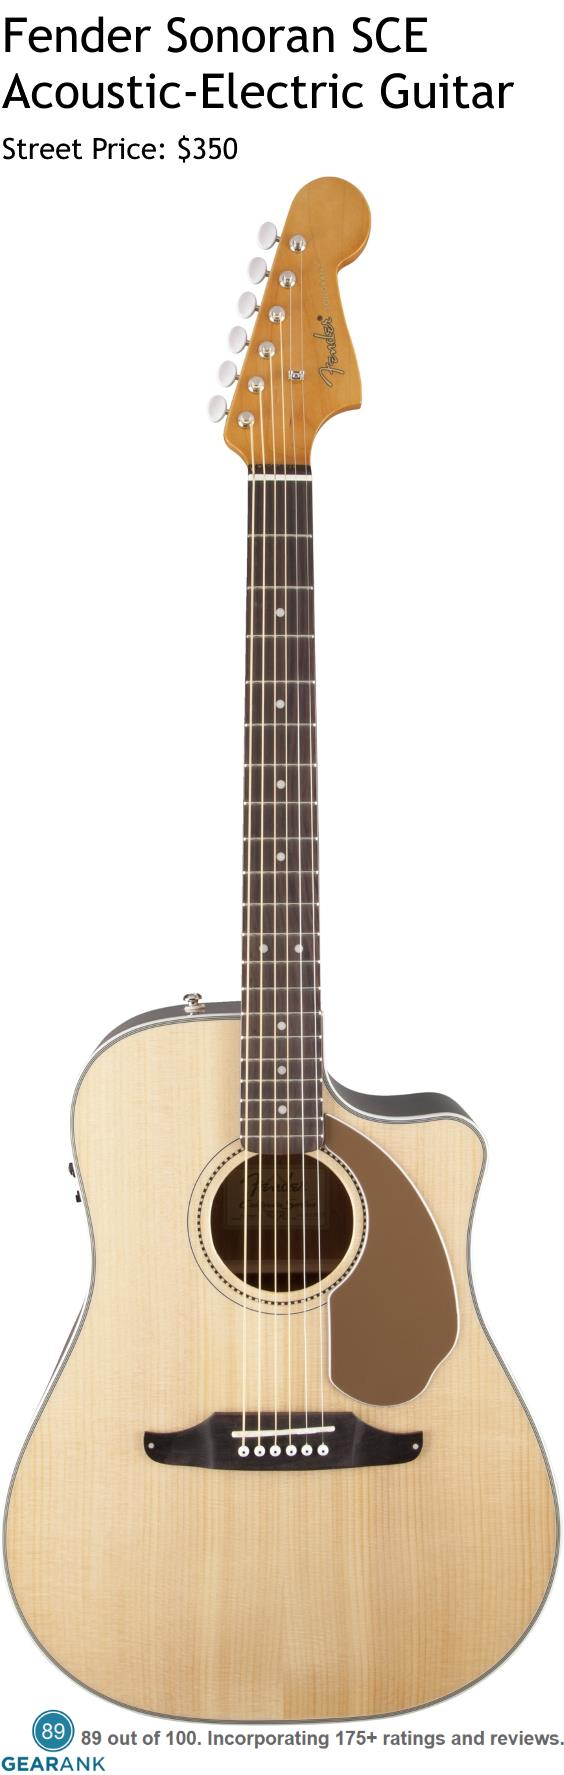 fender sonoran sce acoustic electric guitar it has a solid spruce top with scalloped x bracing and mahogany back and sides for the electronics it uses  [ 564 x 1775 Pixel ]